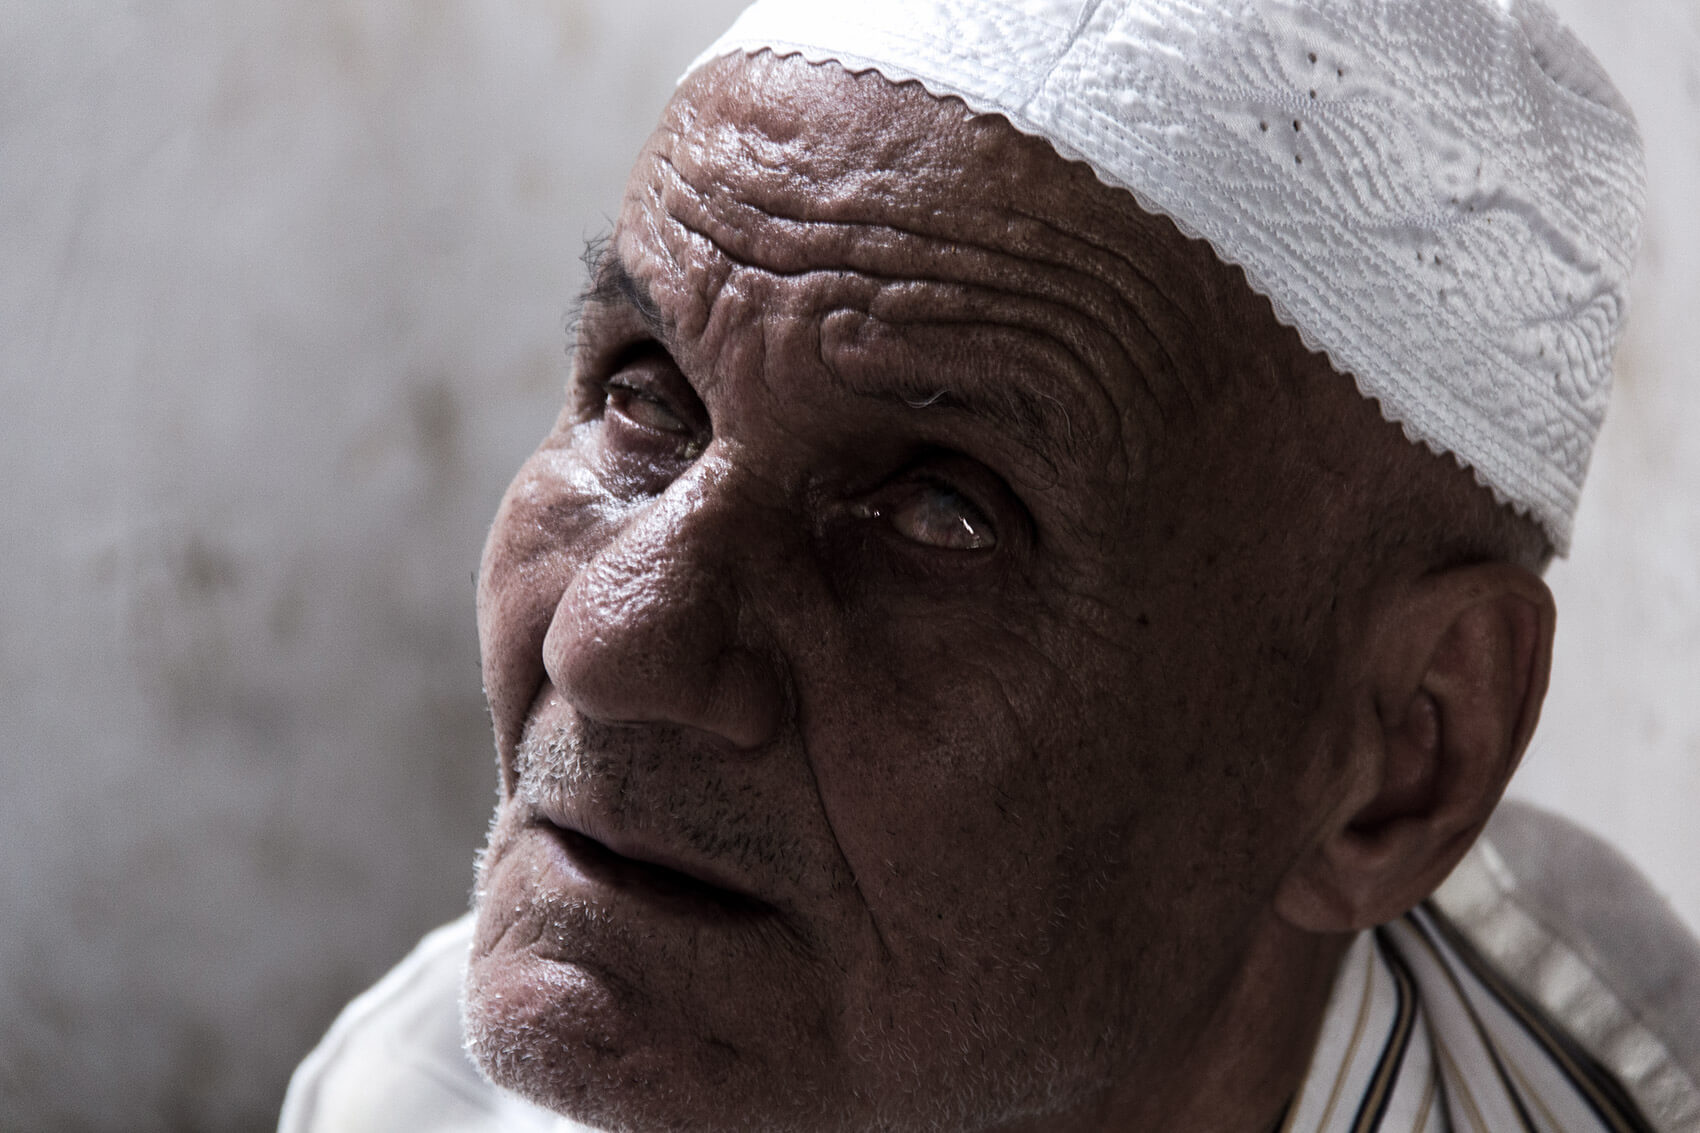 Old blind man in Fes